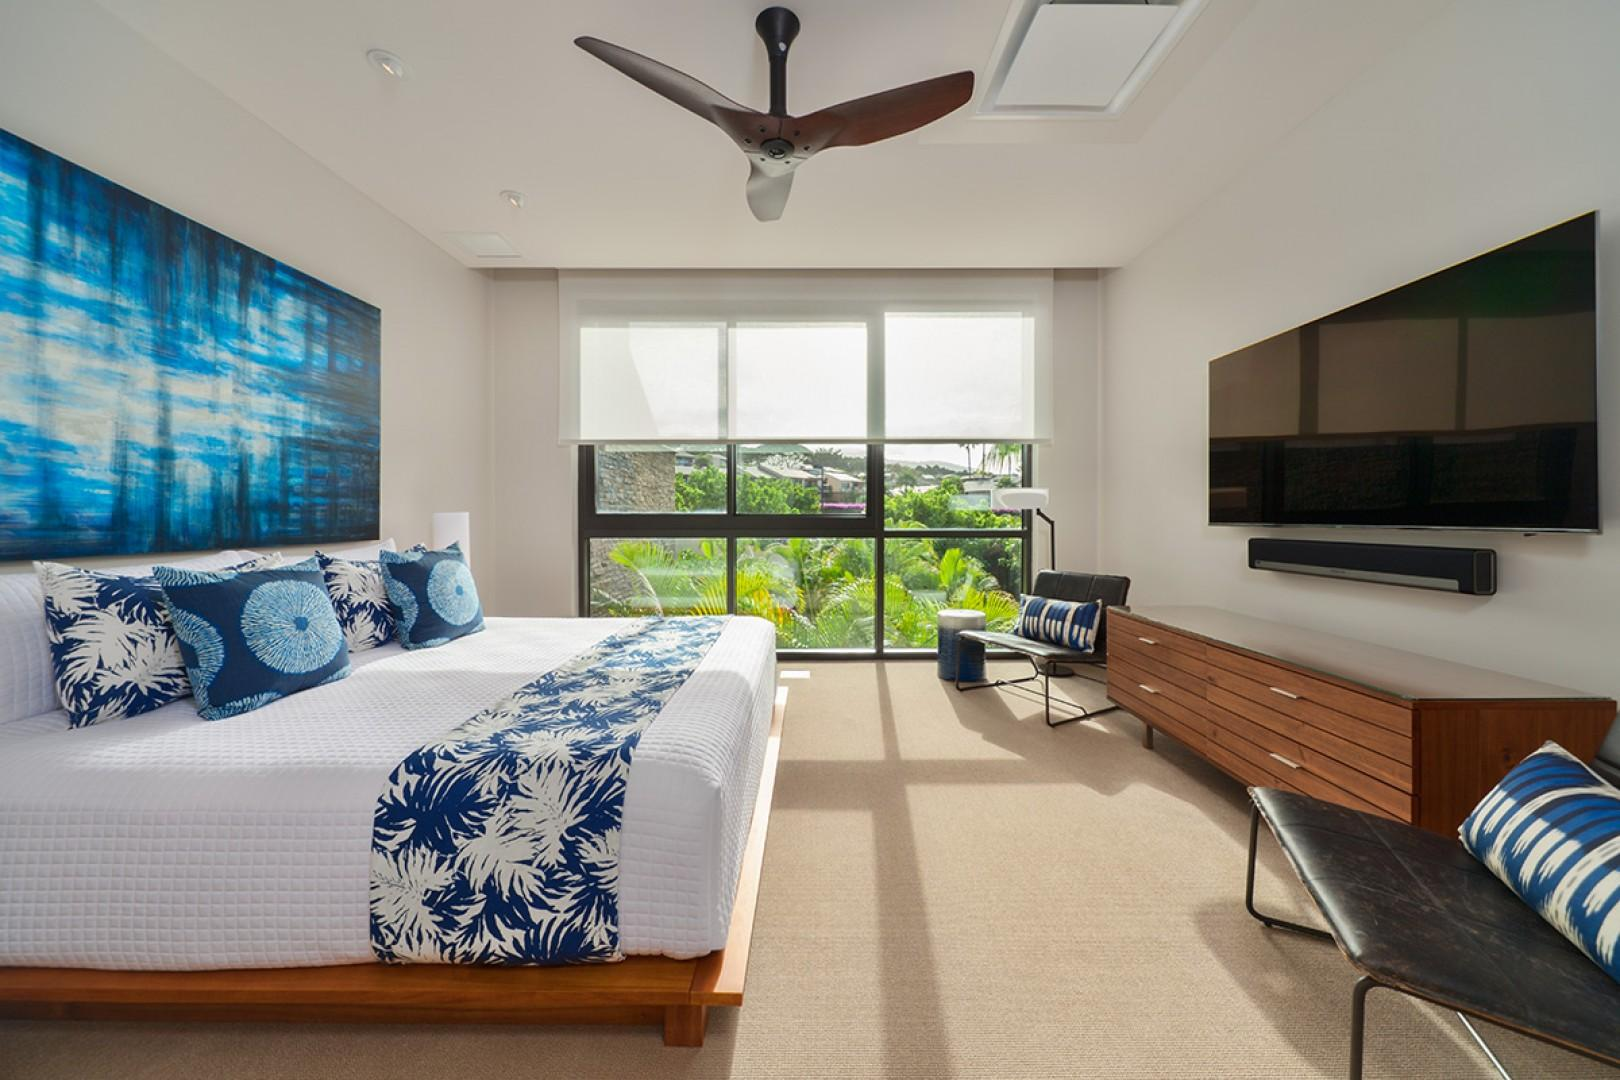 Second King Bedroom Suite with Tropical Floral Garden View, 65